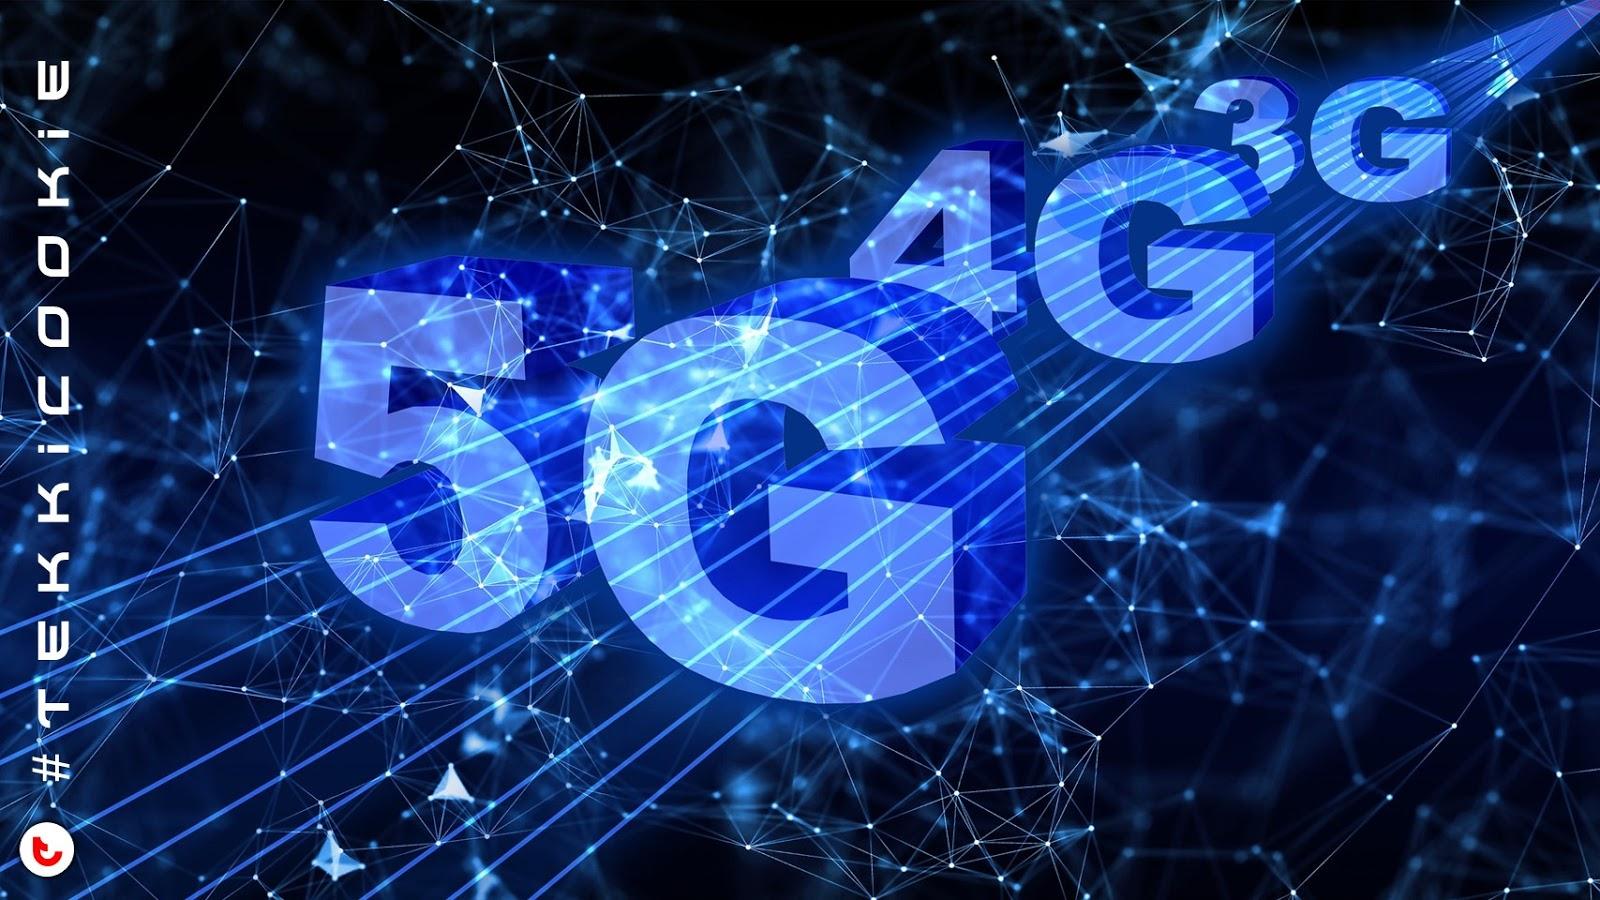 5G Explained! Fastest Data Speed to Harmful Electromagnetic Waves